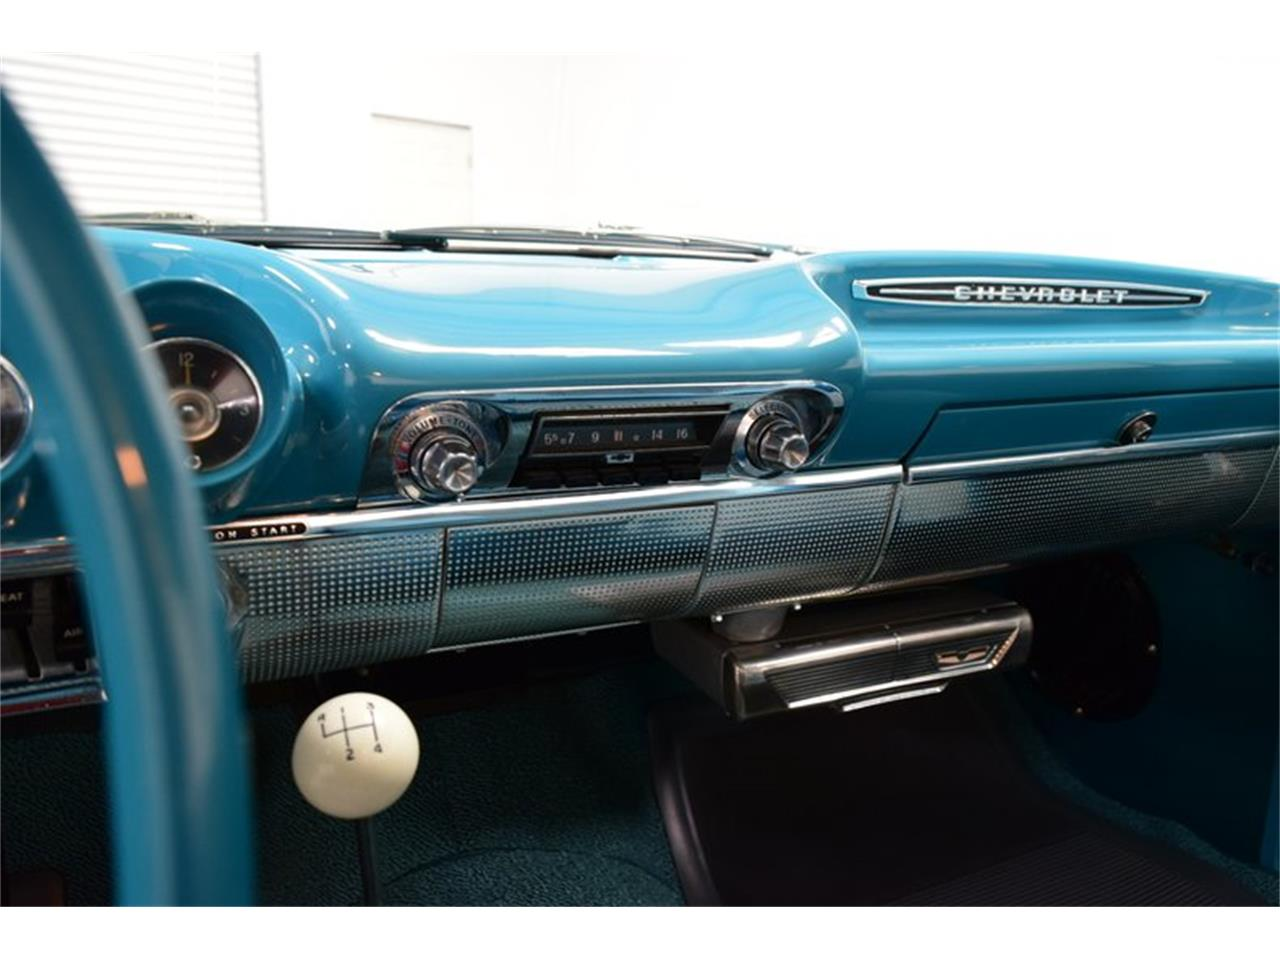 Large Picture of '60 El Camino located in North Carolina Offered by Shelton Classics & Performance - Q525